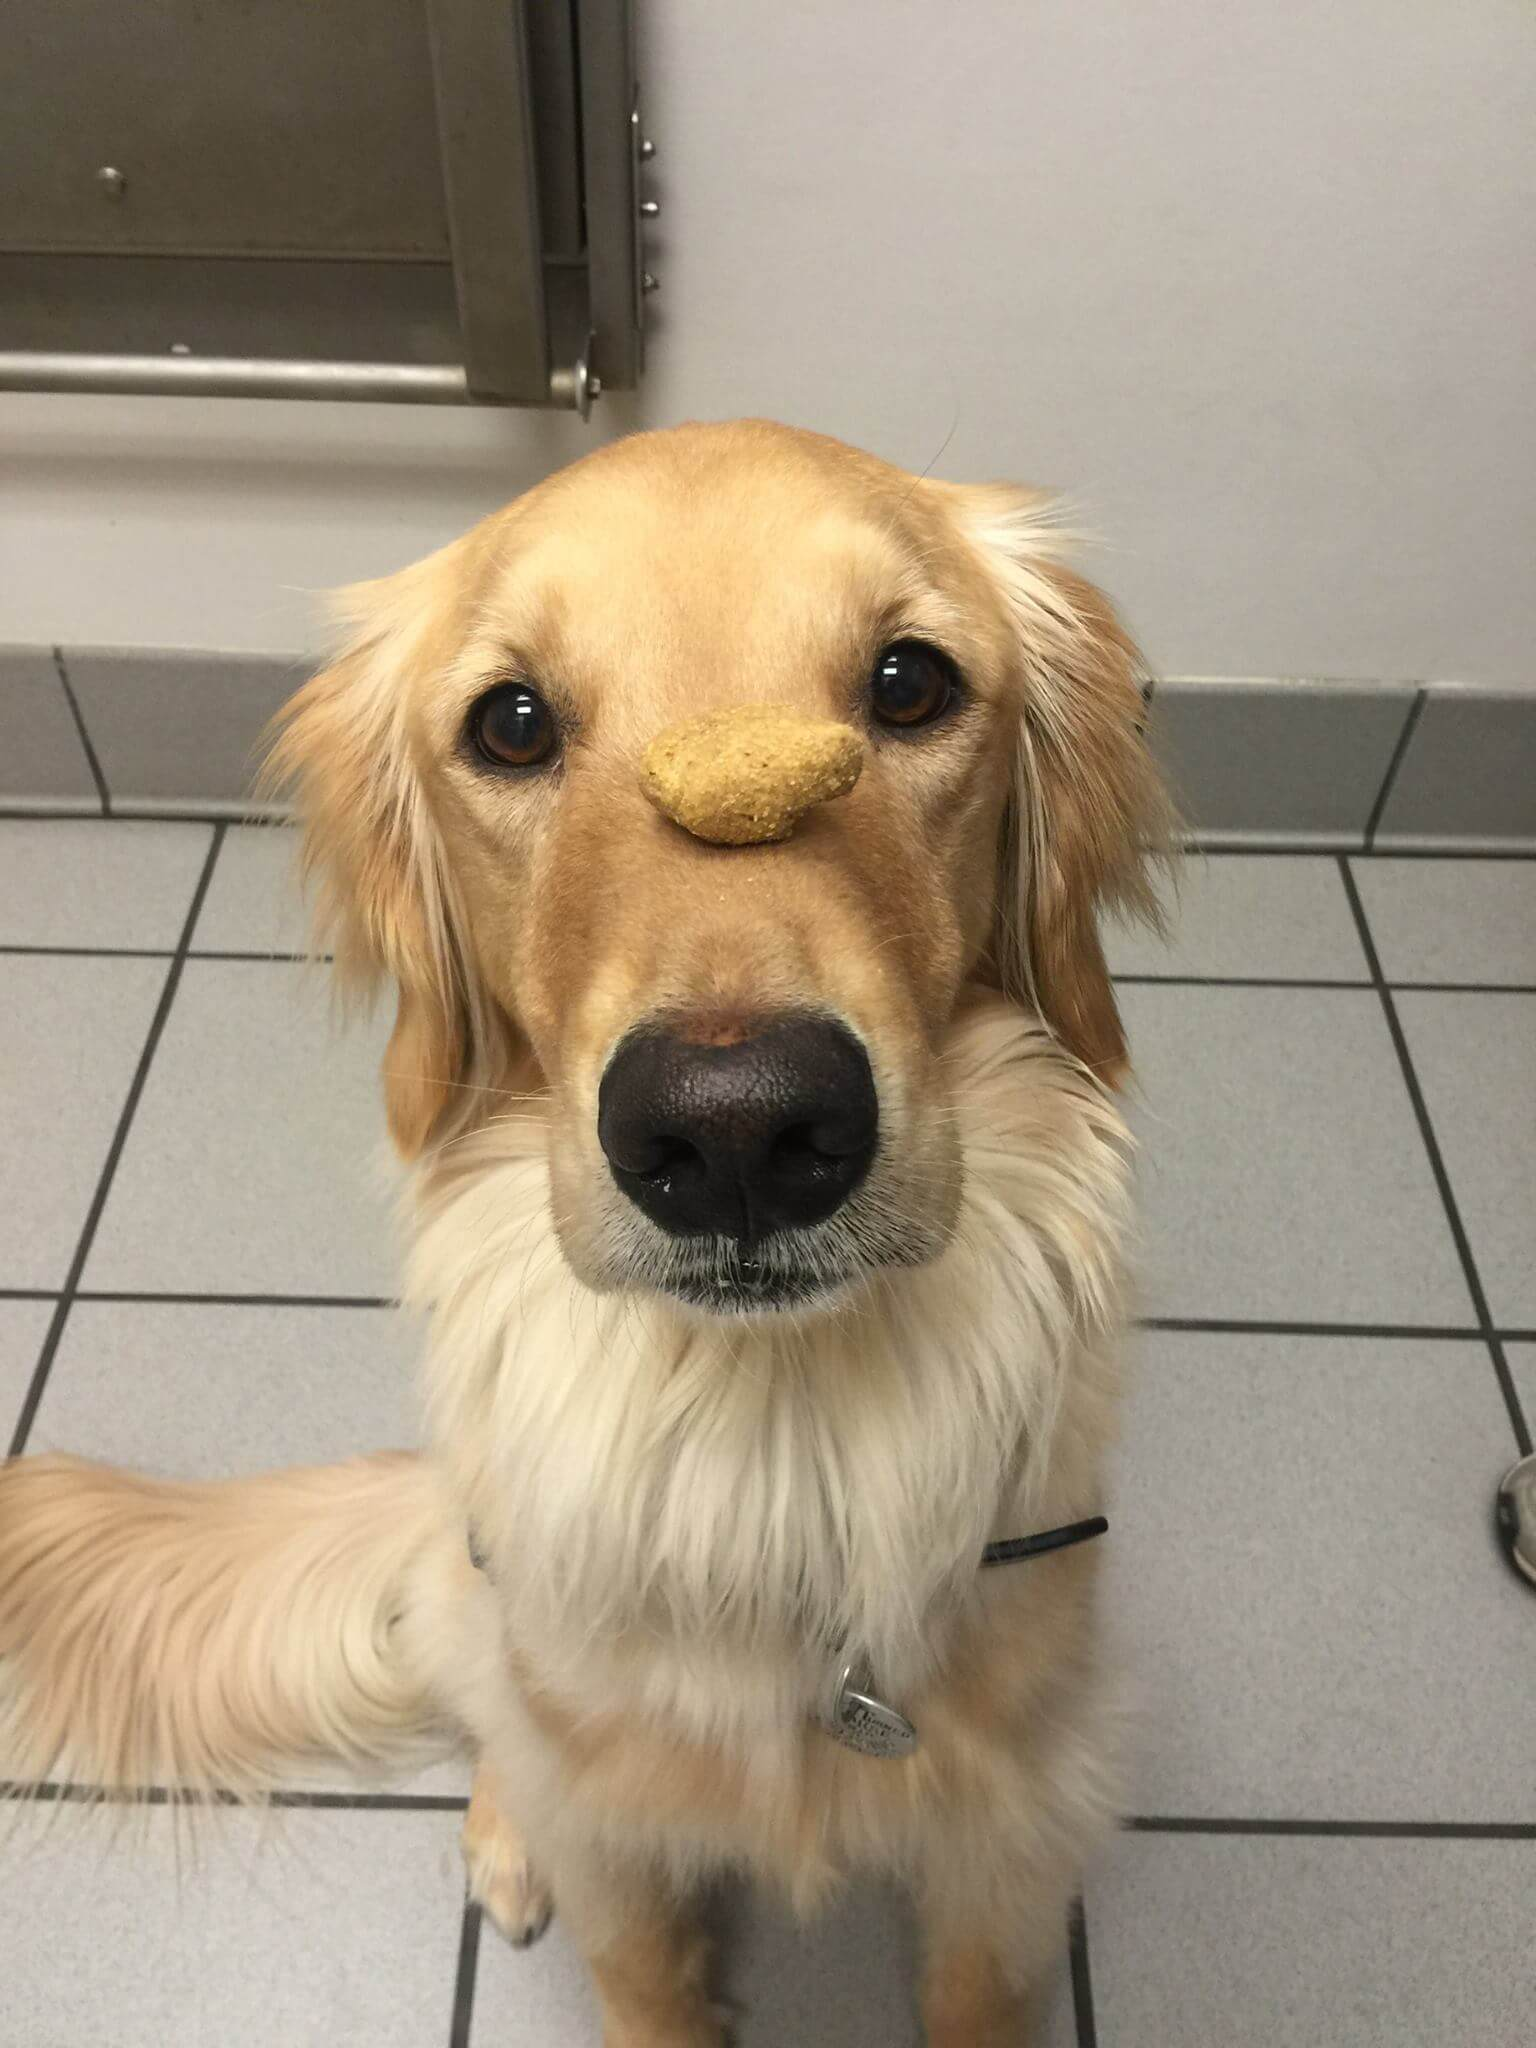 dog in dog training classes with a treat on his nose